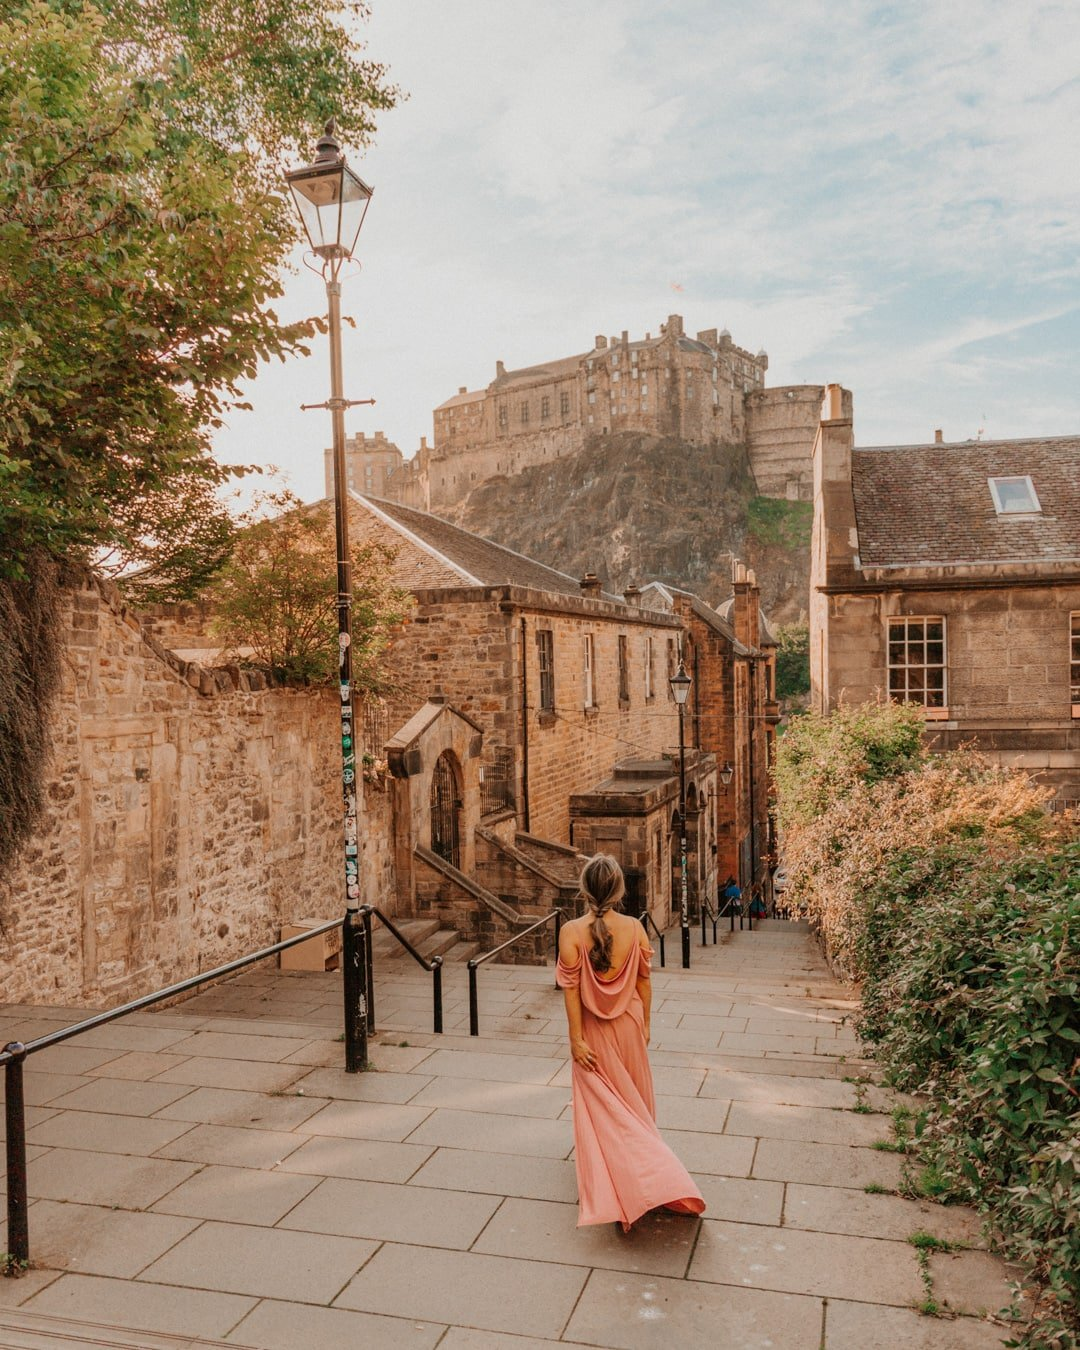 the vennel, one of the most Instagrammable places in Edinburgh